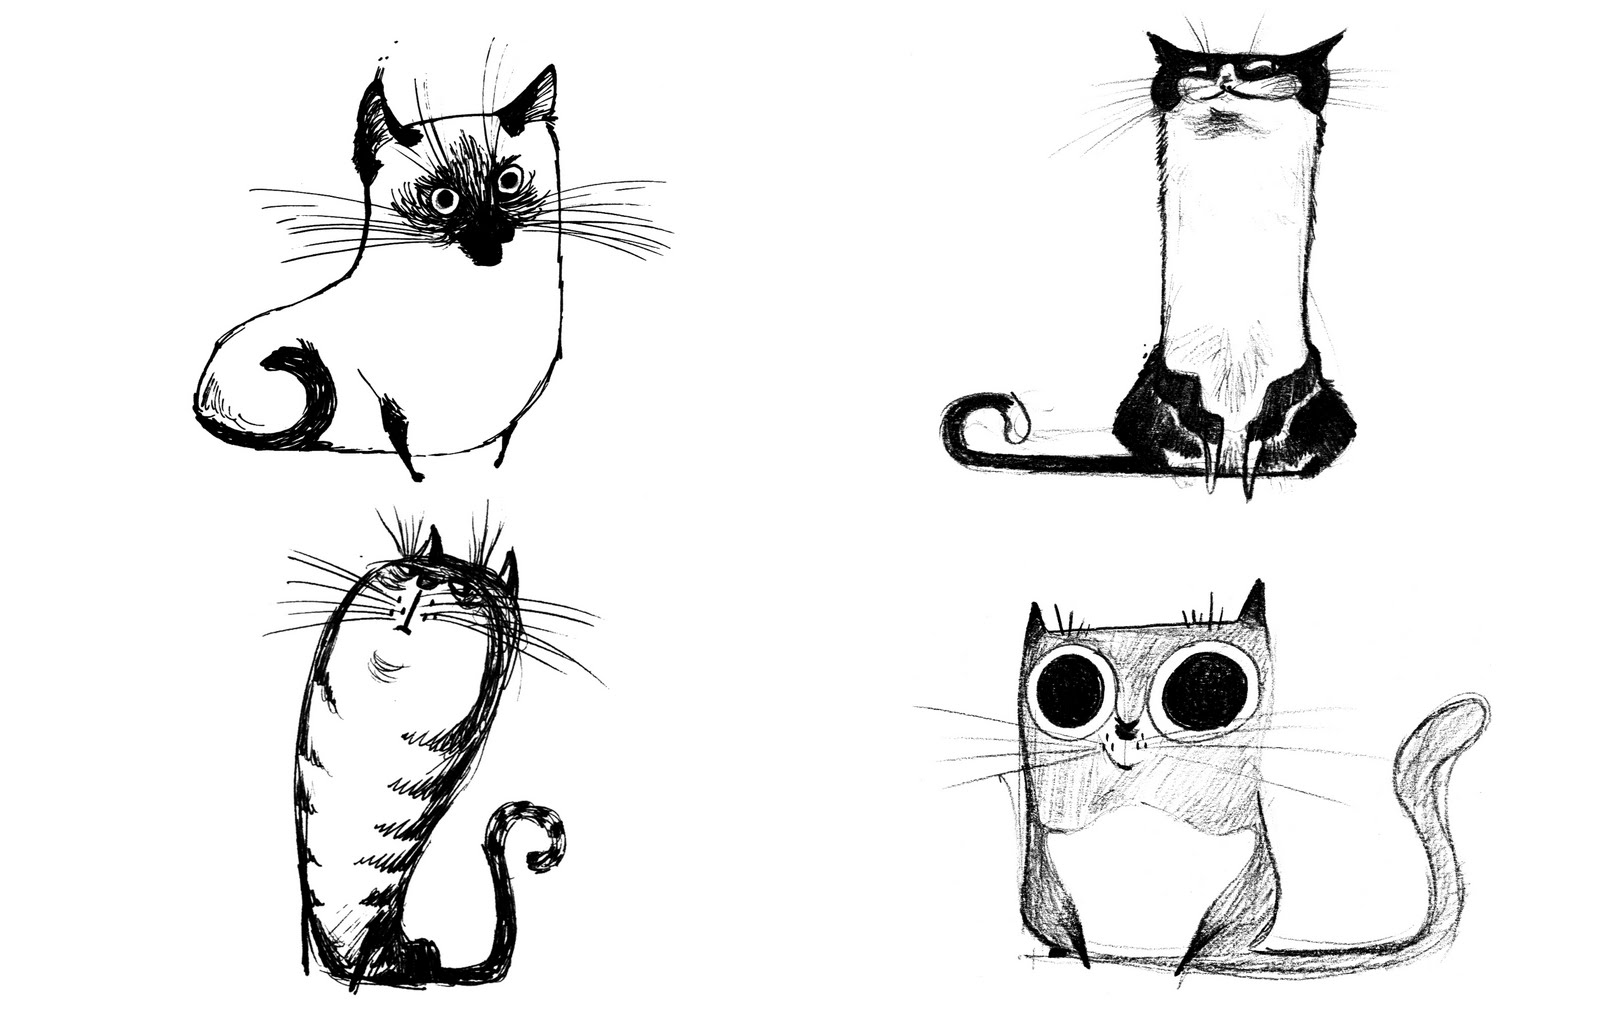 cat_drawings01_original.jpg